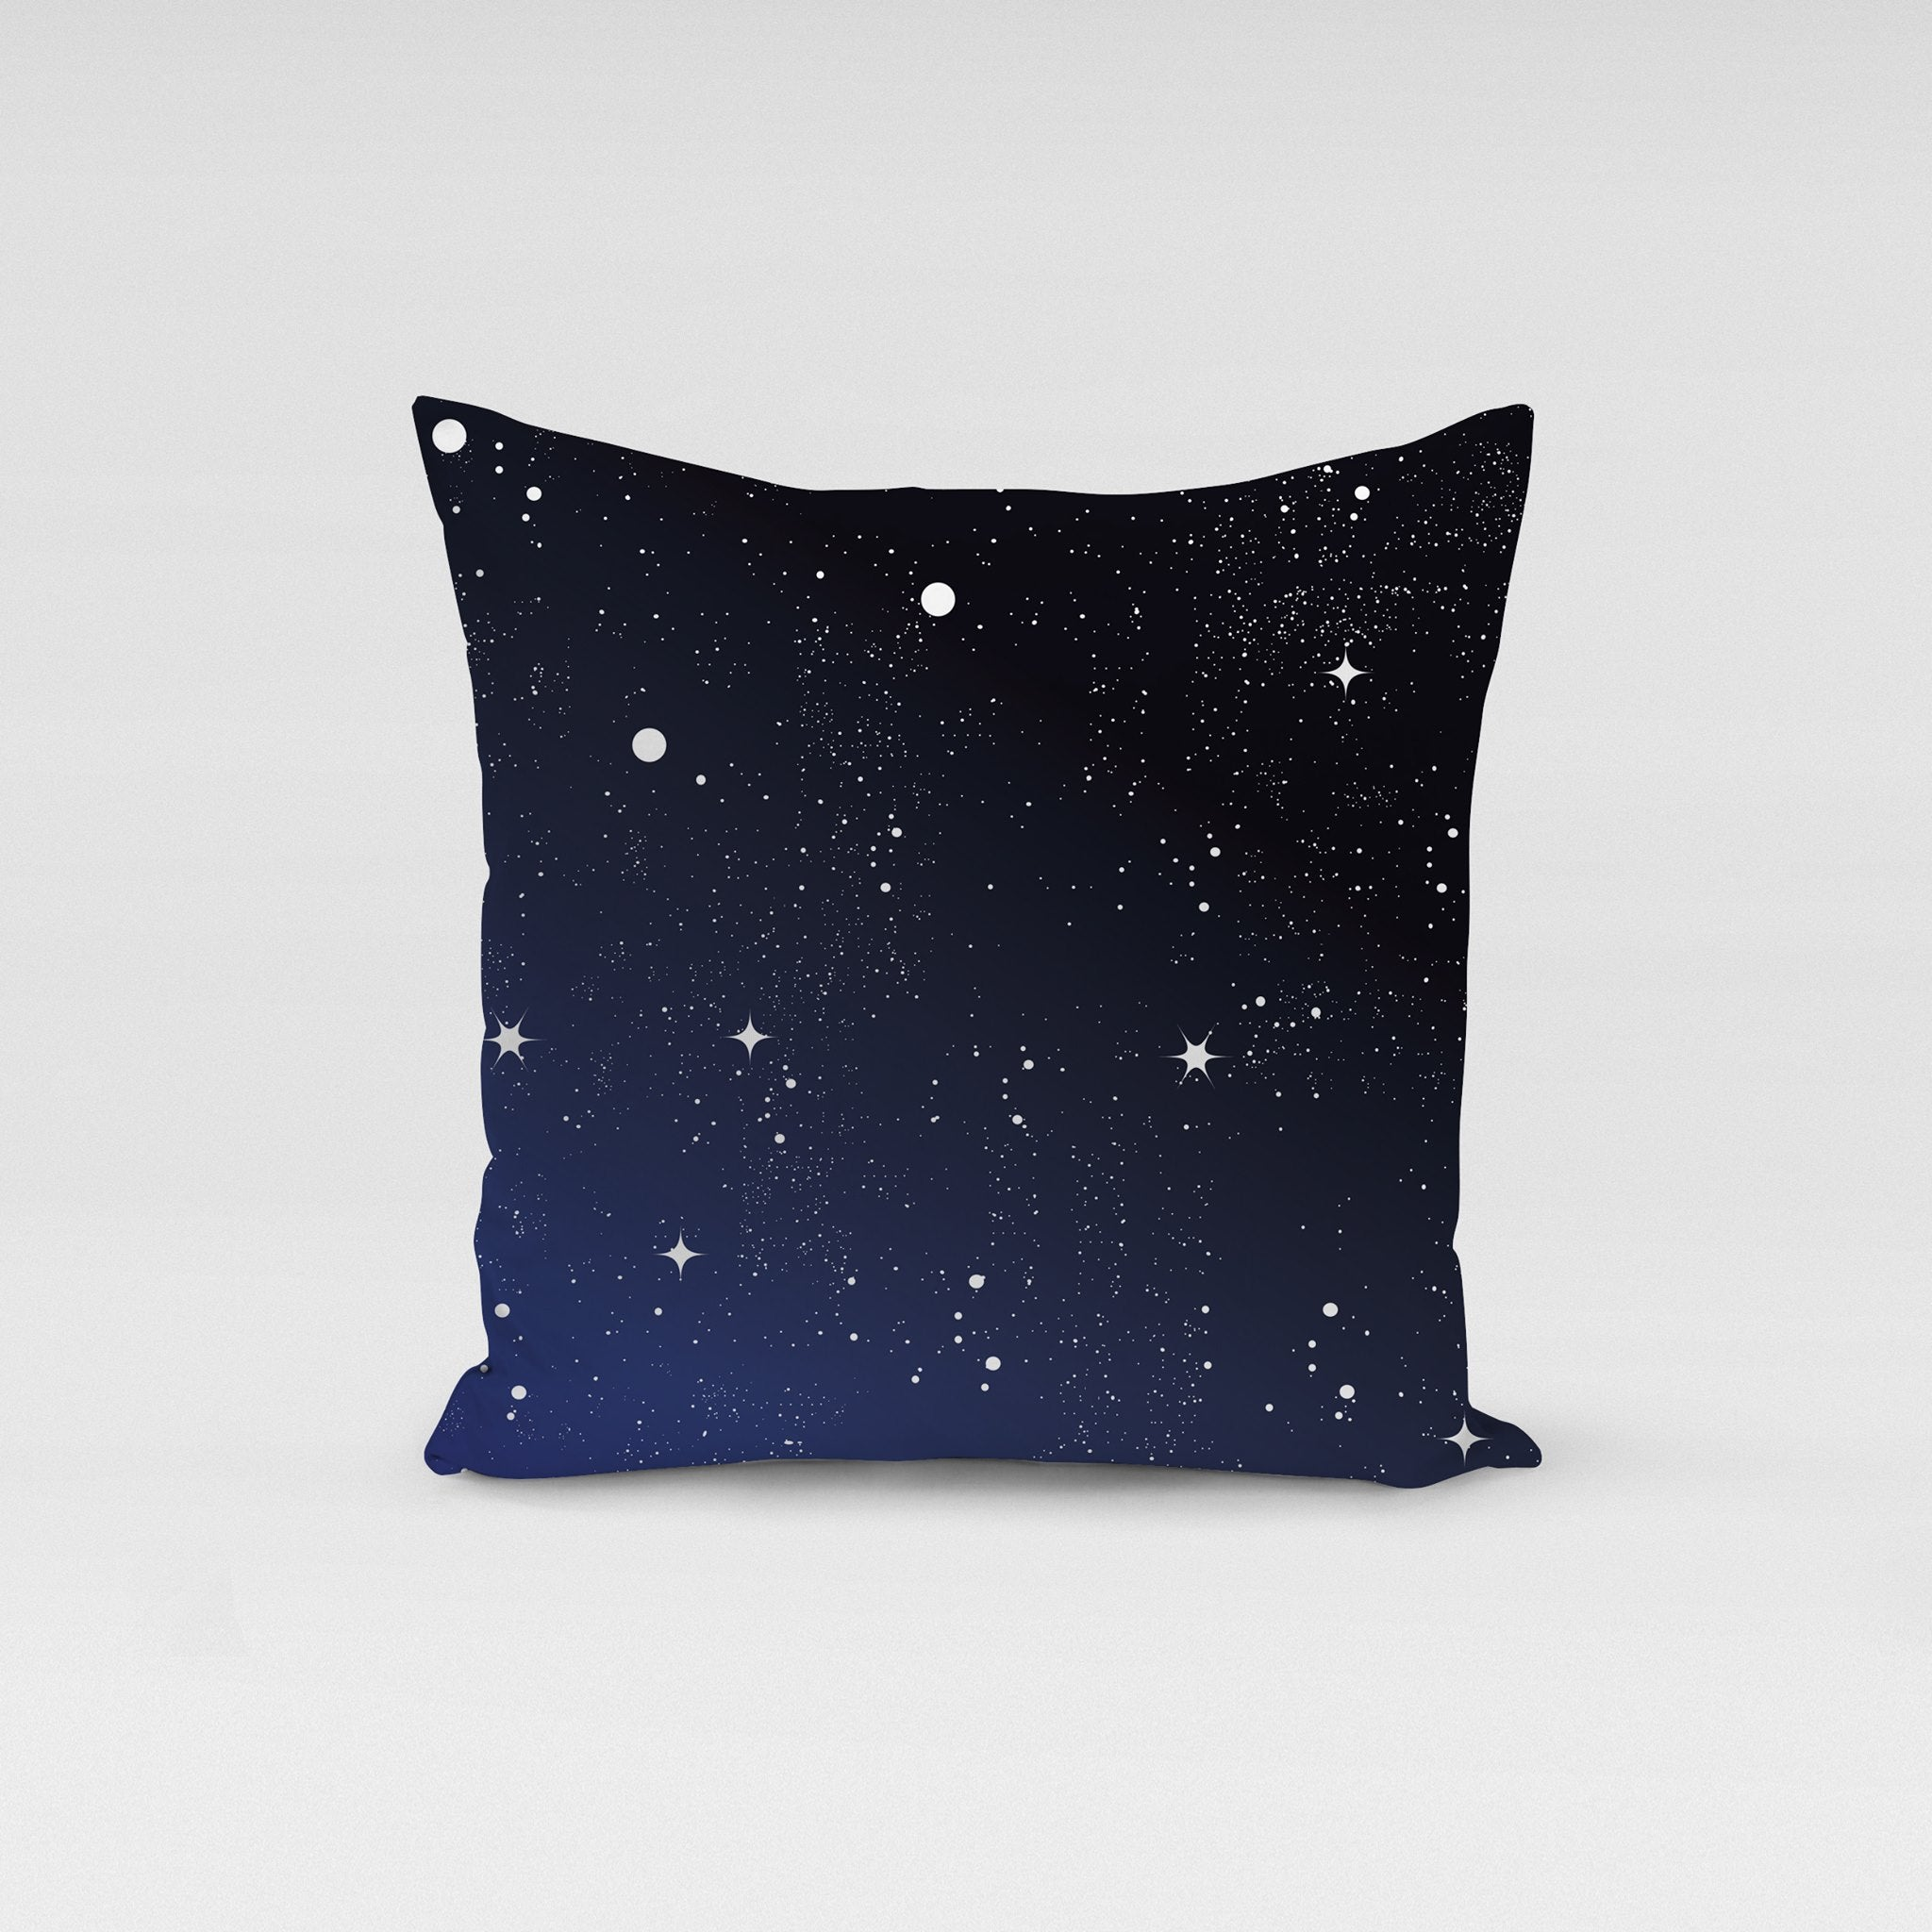 Astronomy Pillow